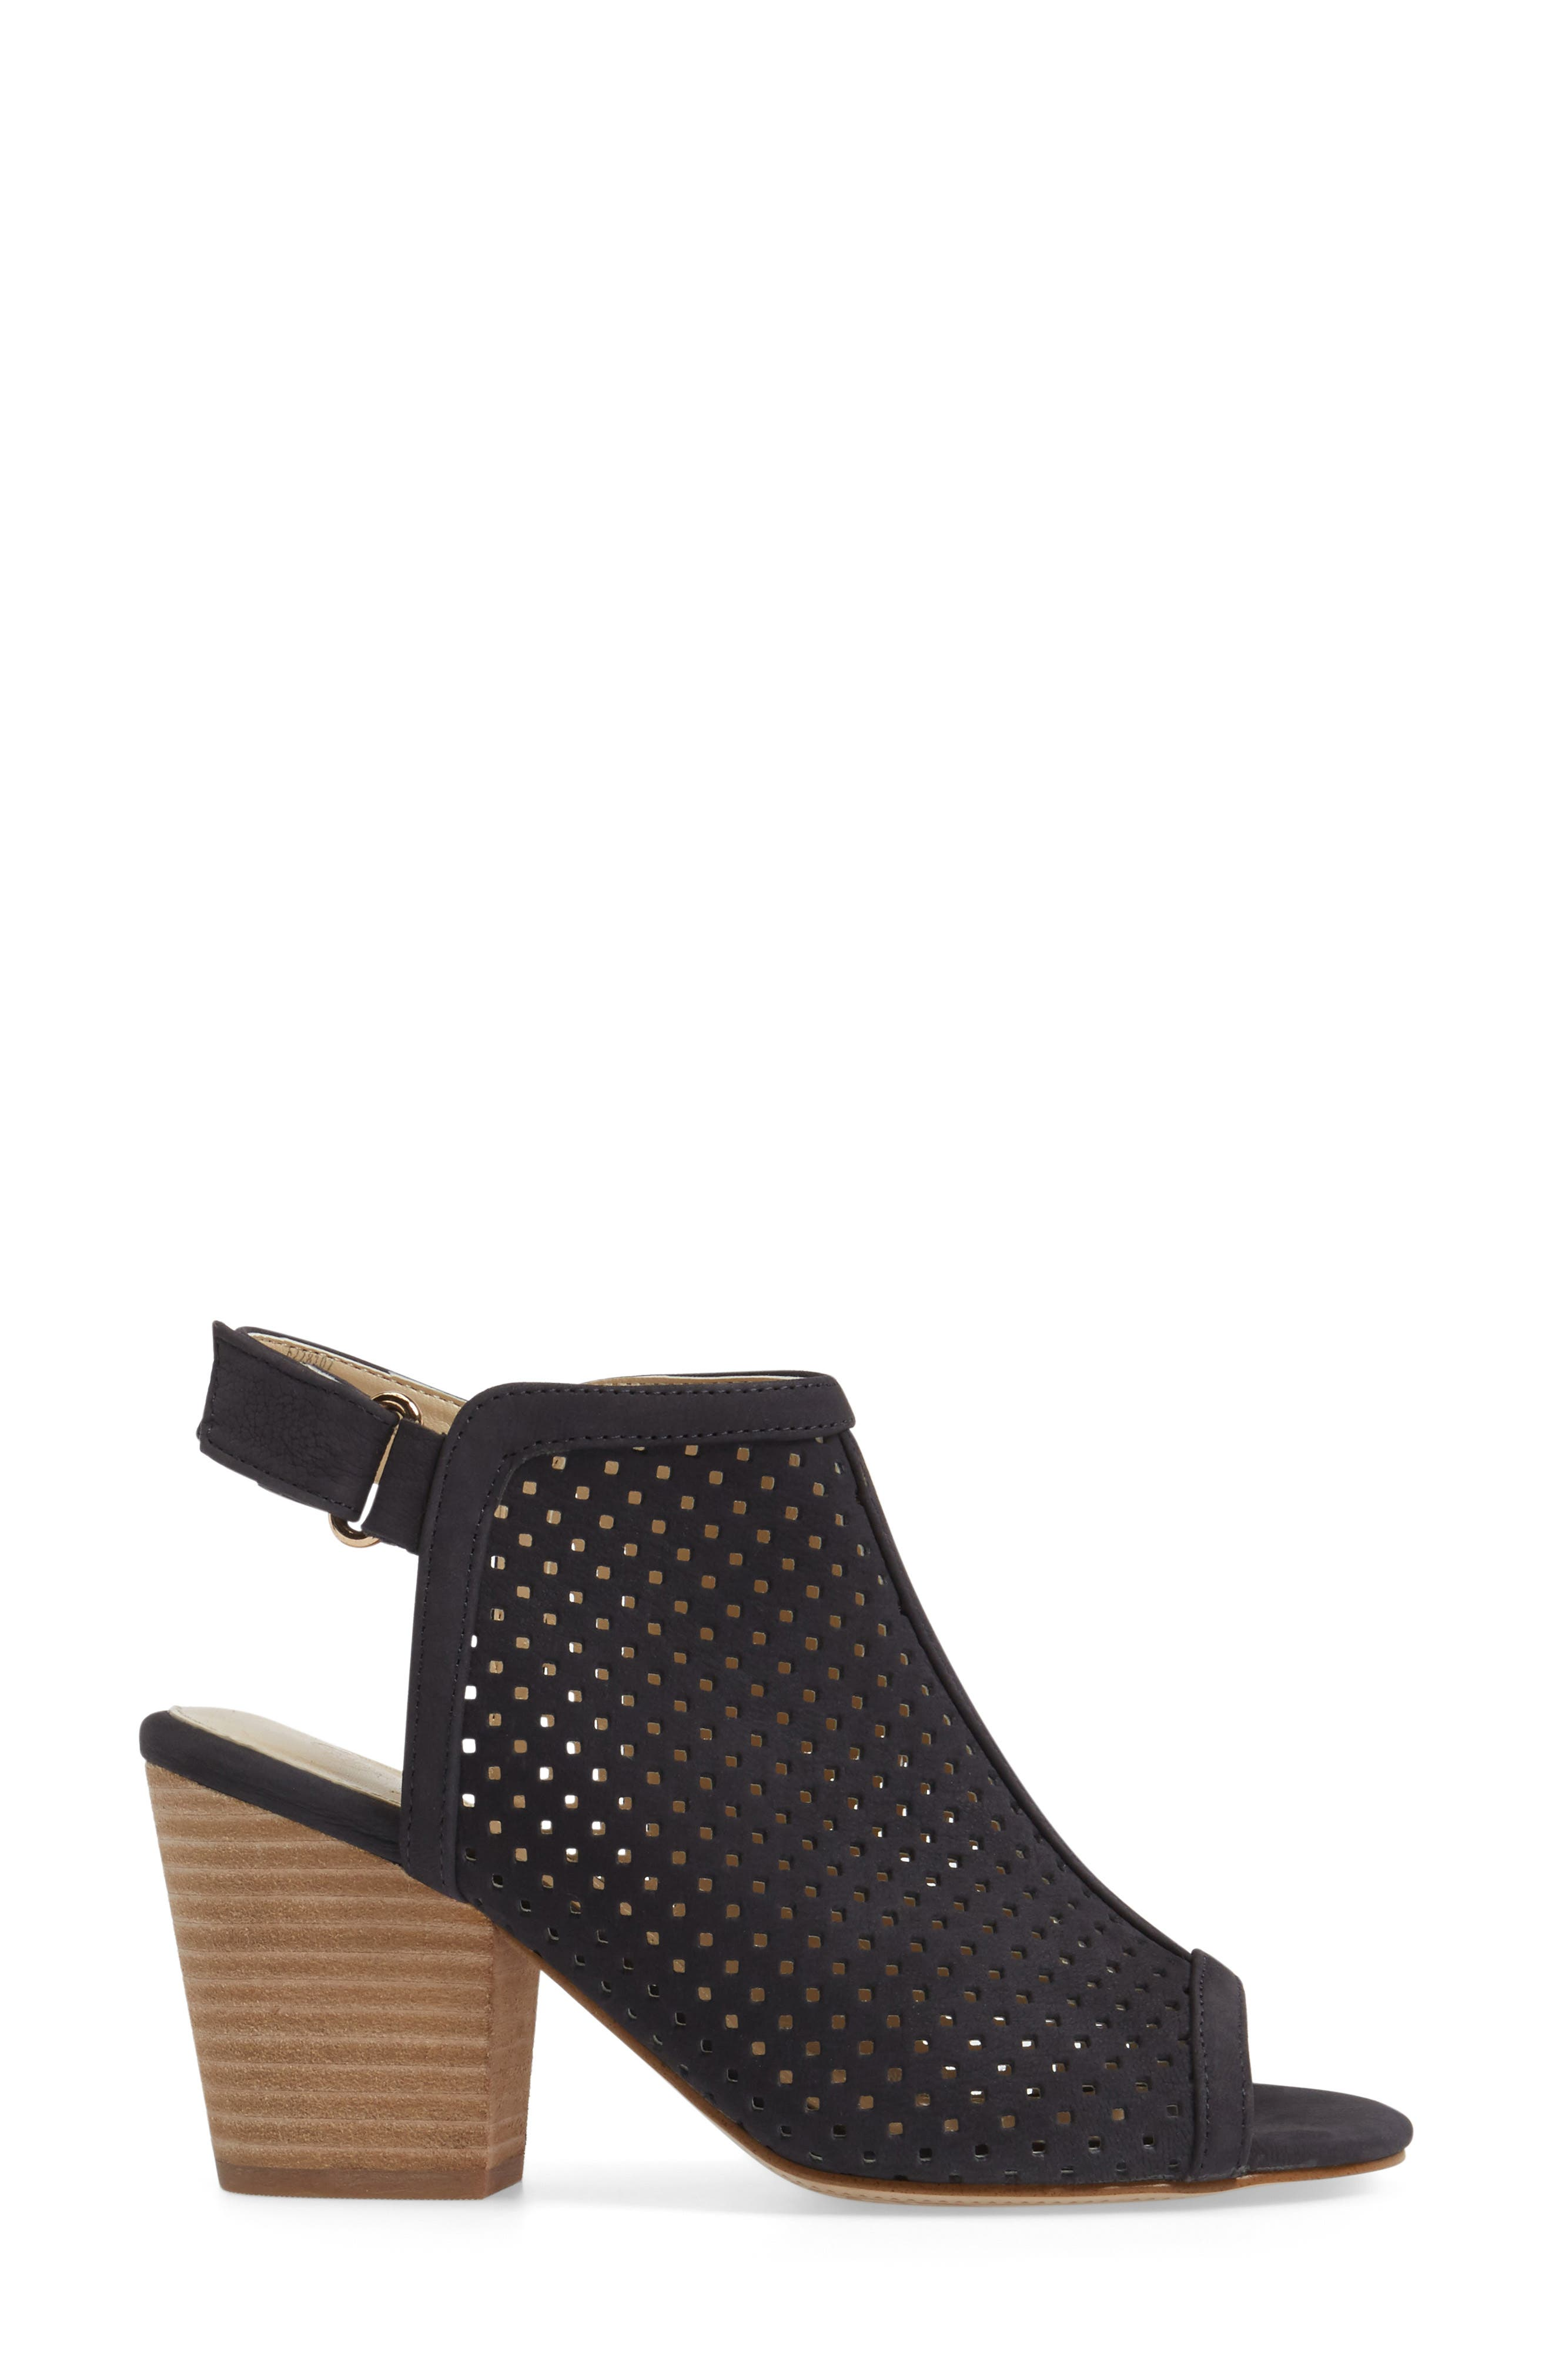 ,                             'Lora' Perforated Open-Toe Bootie Sandal,                             Alternate thumbnail 20, color,                             410